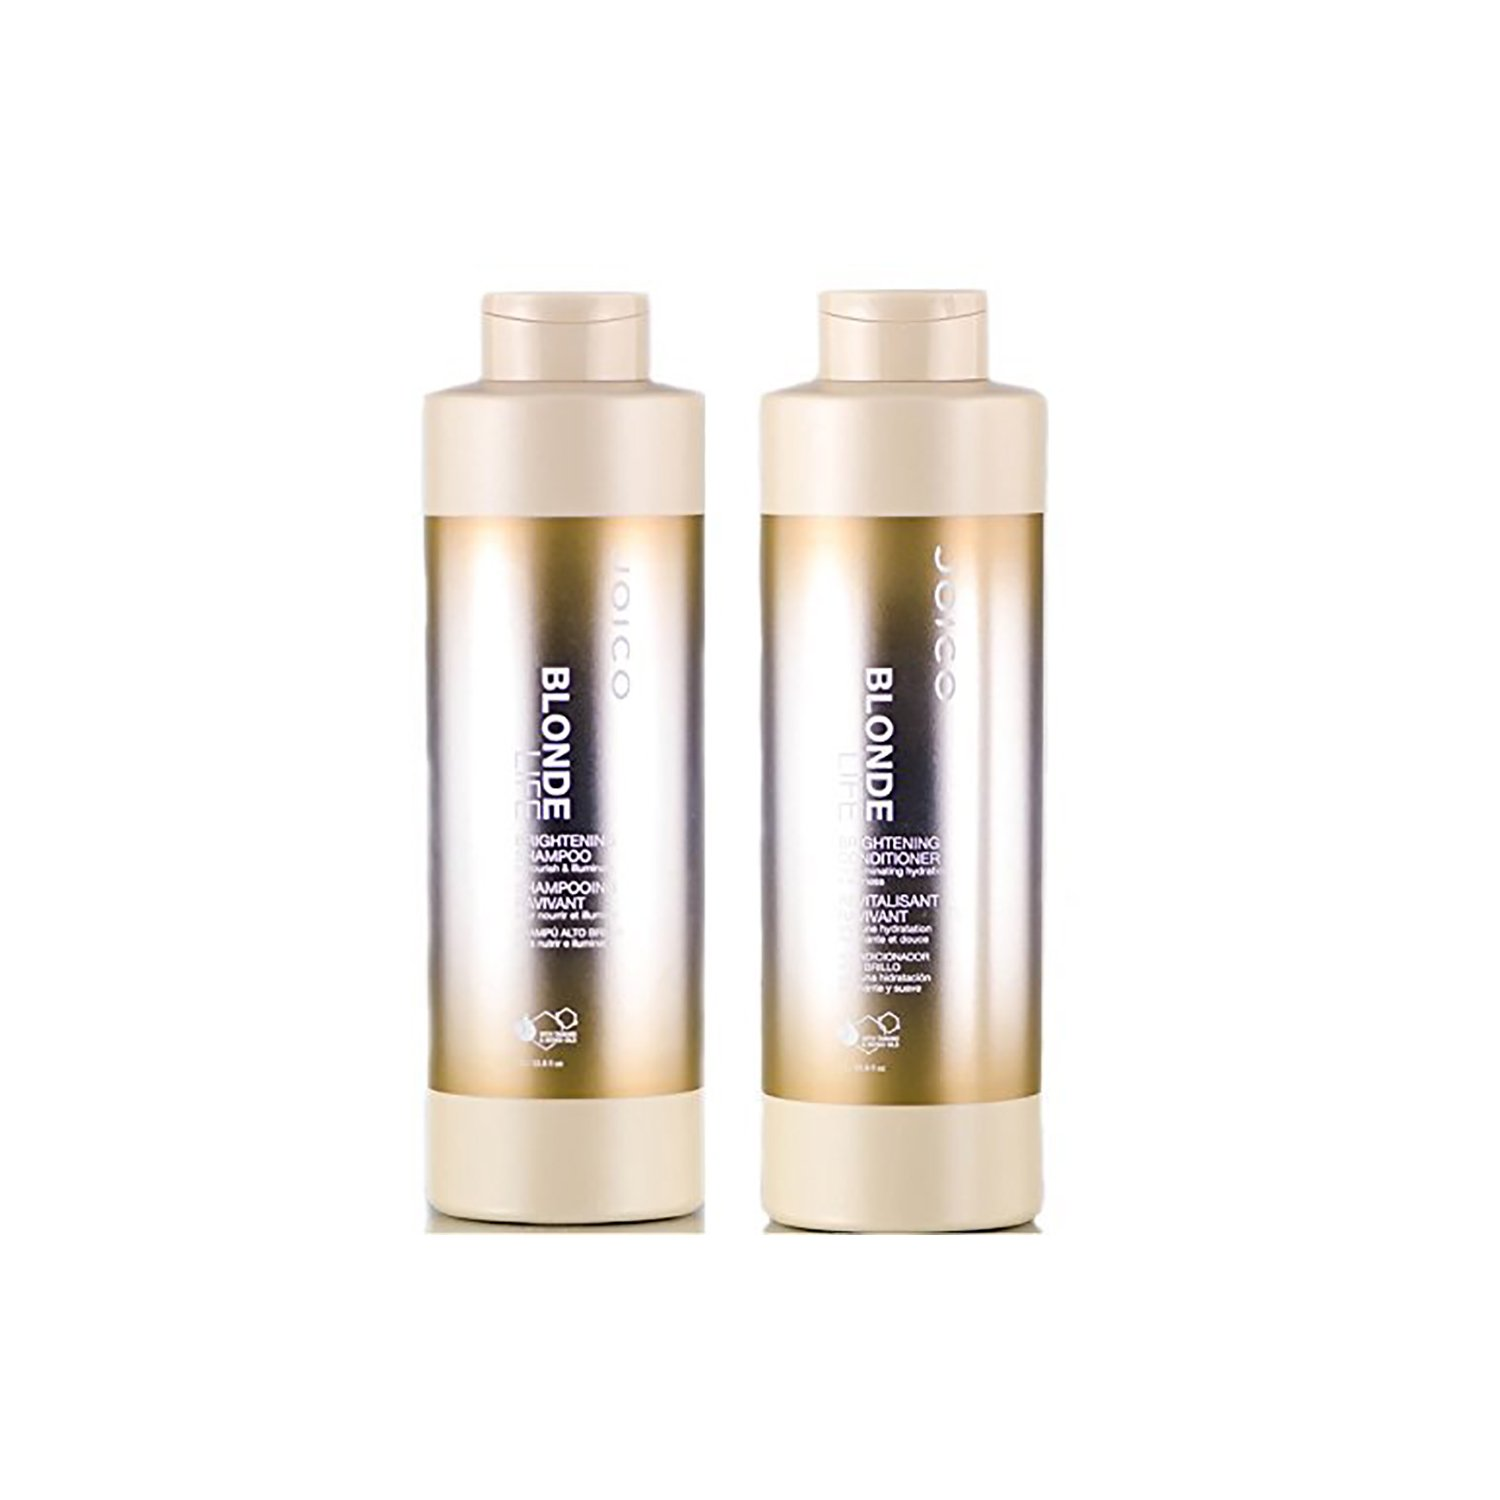 Joico Blonde Life Brightening Shampoo & Conditioner 33 oz. LITER SET Blonde Life by Joico